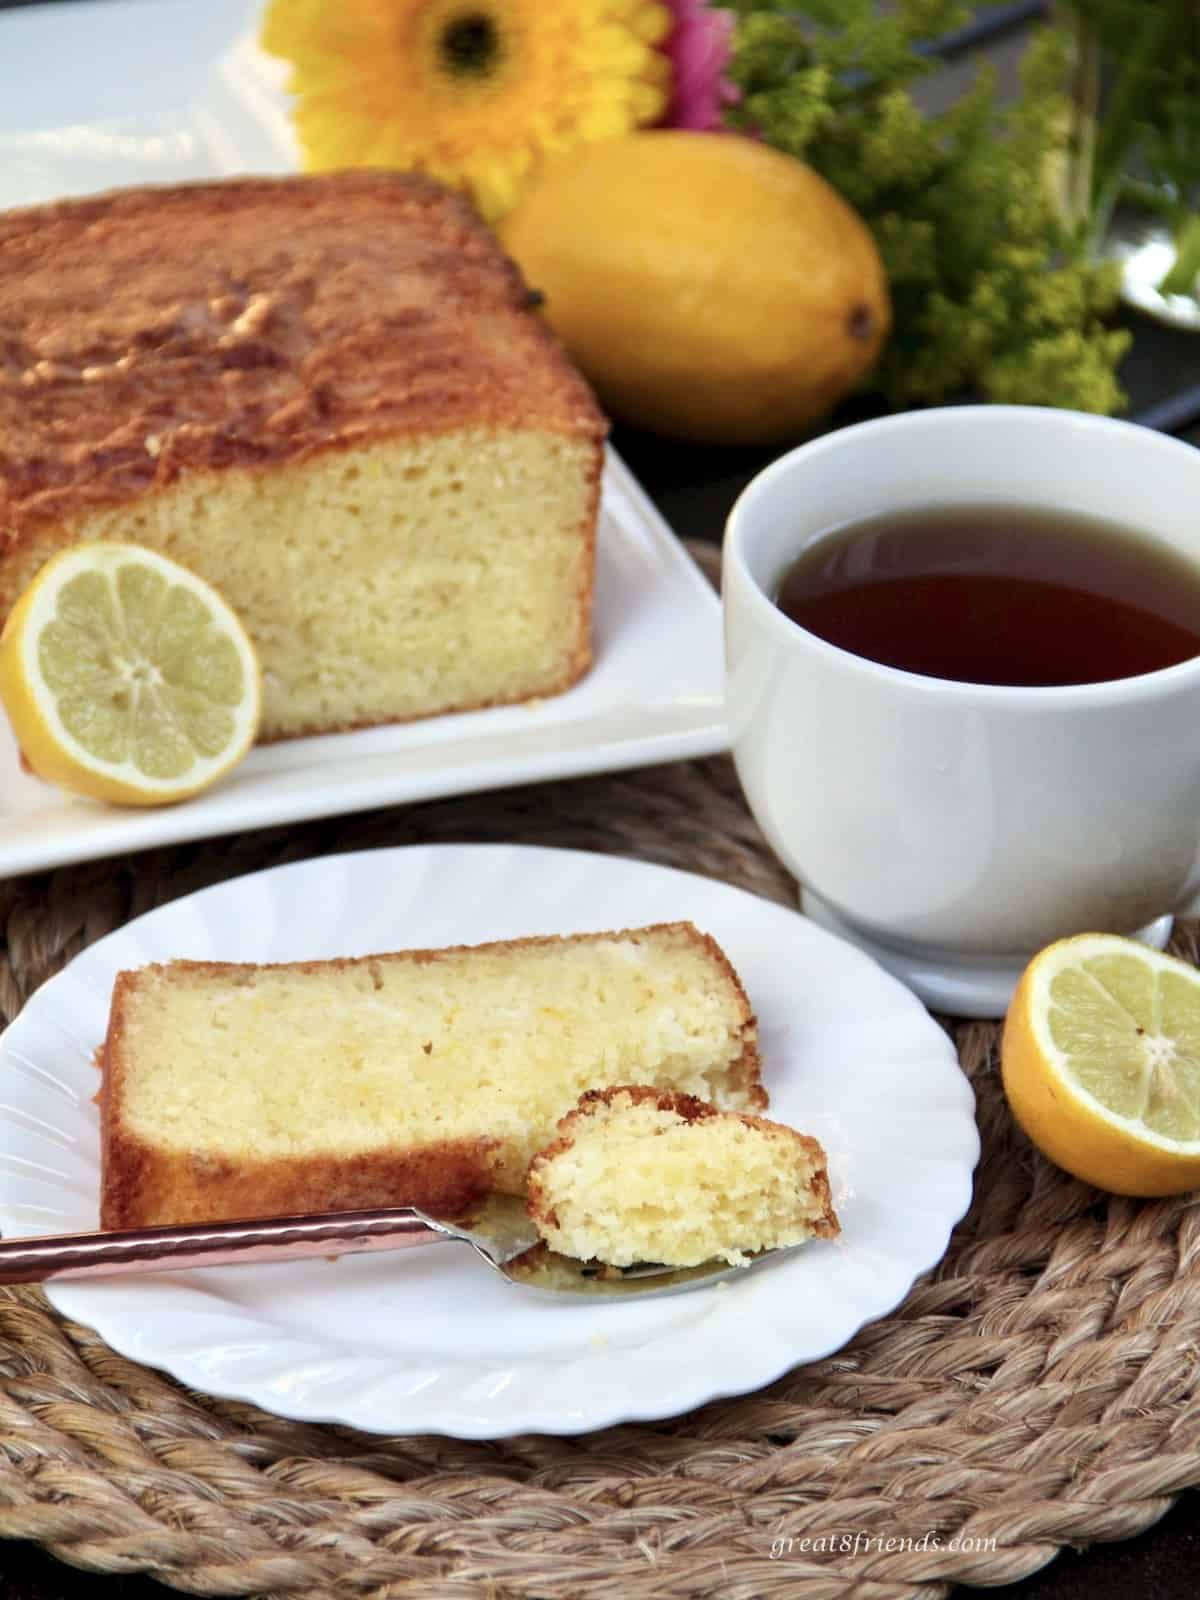 Sliced lemon ricotta pound cake served with a cup of coffee.